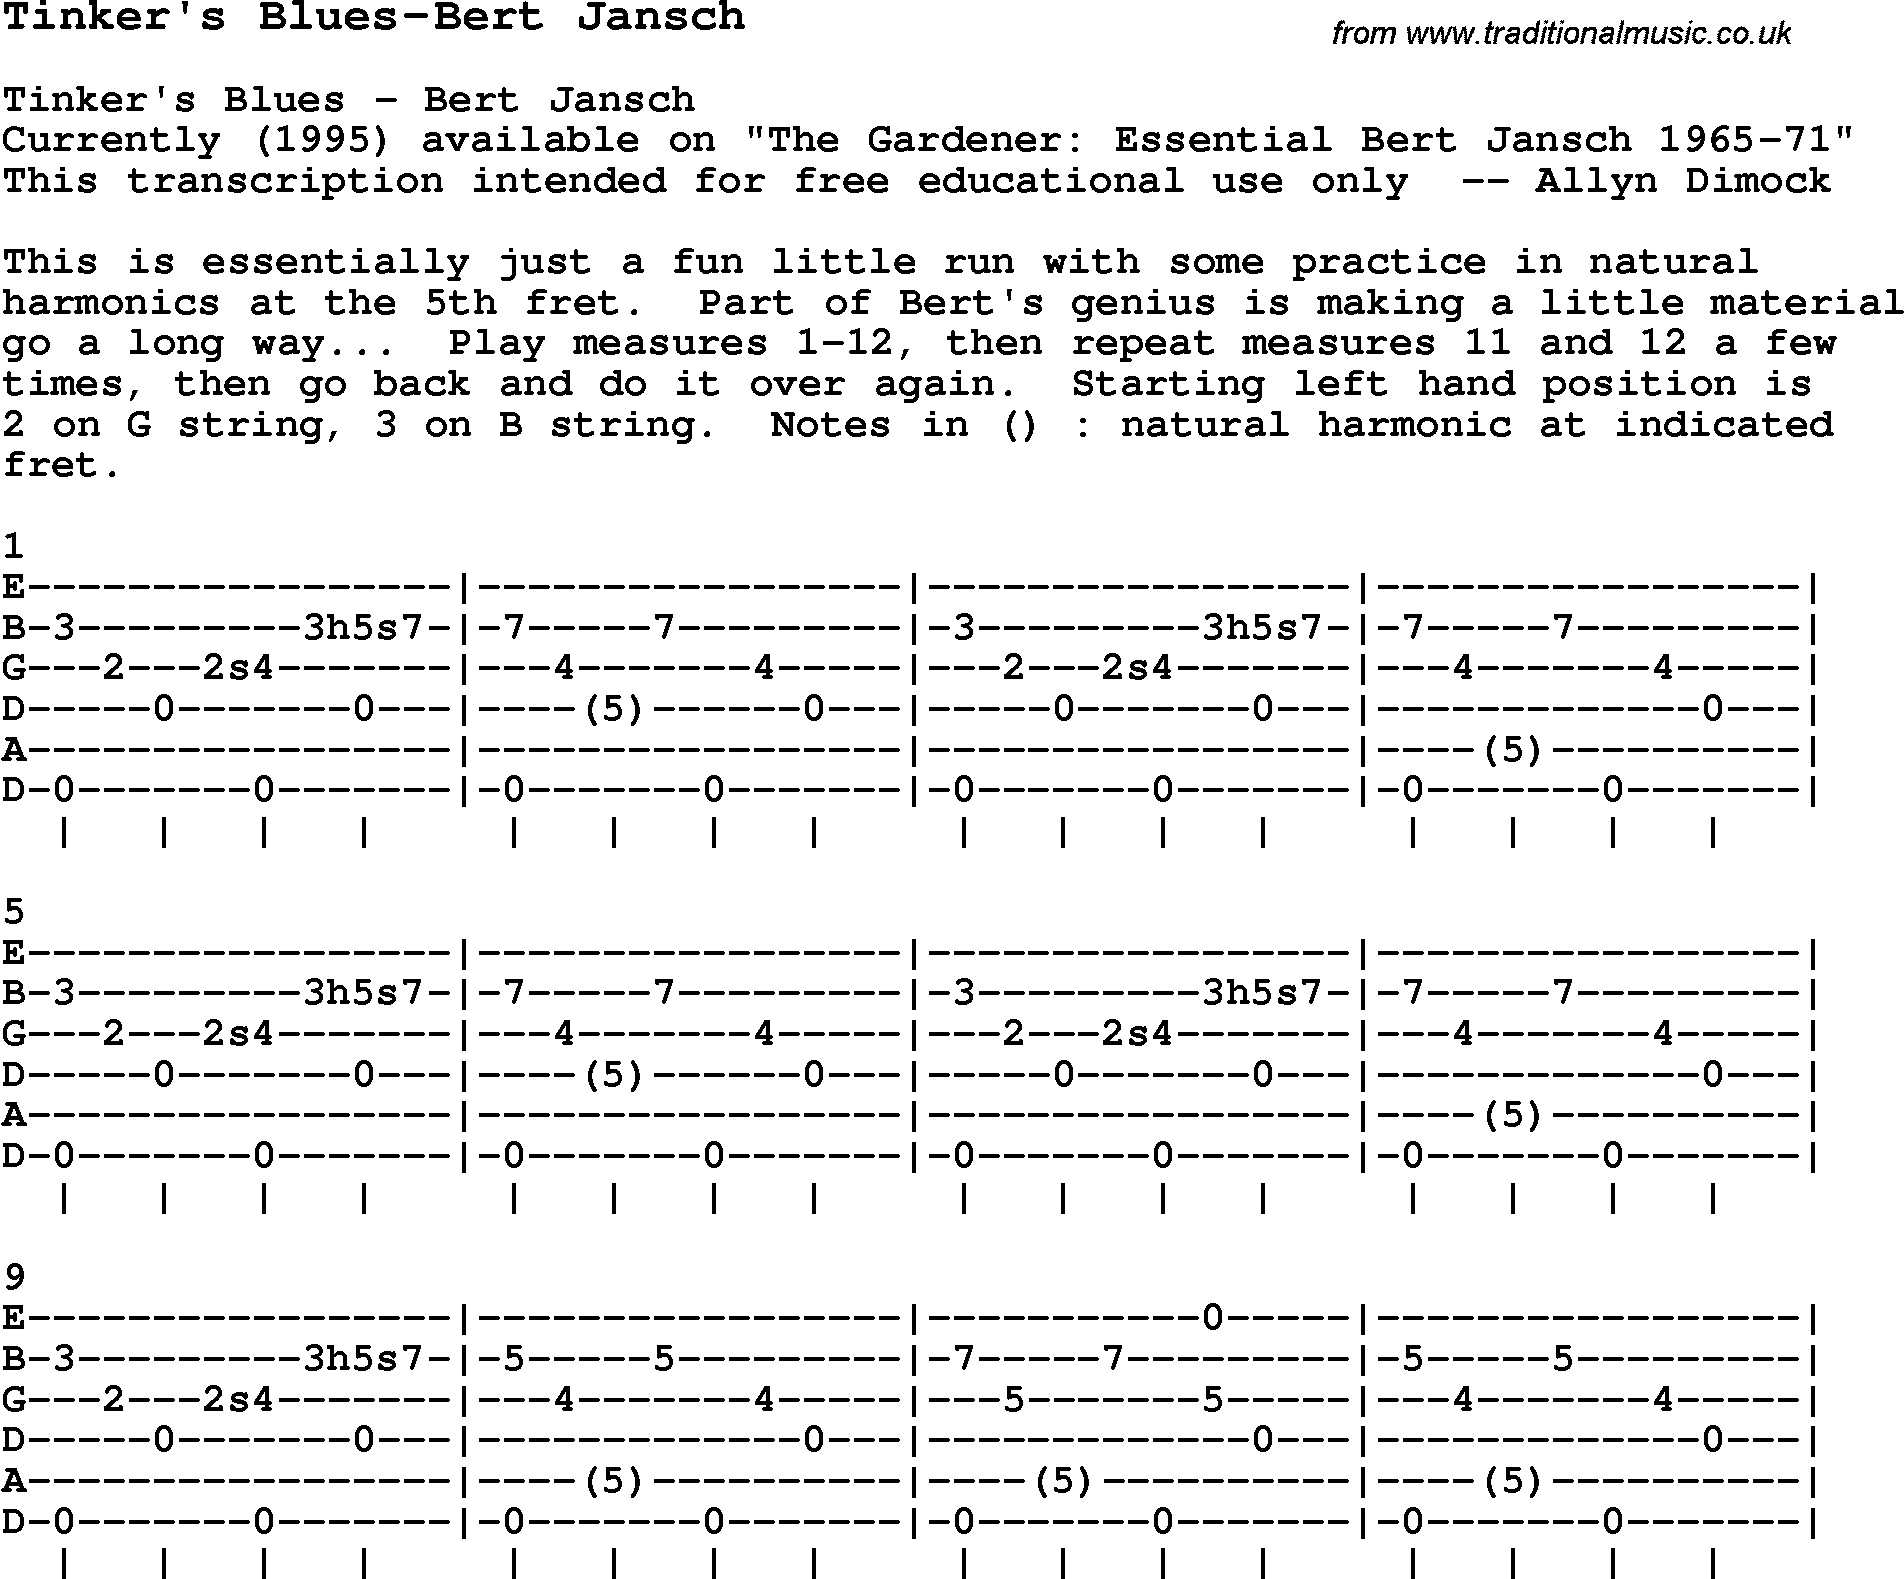 Blues Guitar Song Lyrics Chords Tablature Playing Hints For Tinkers